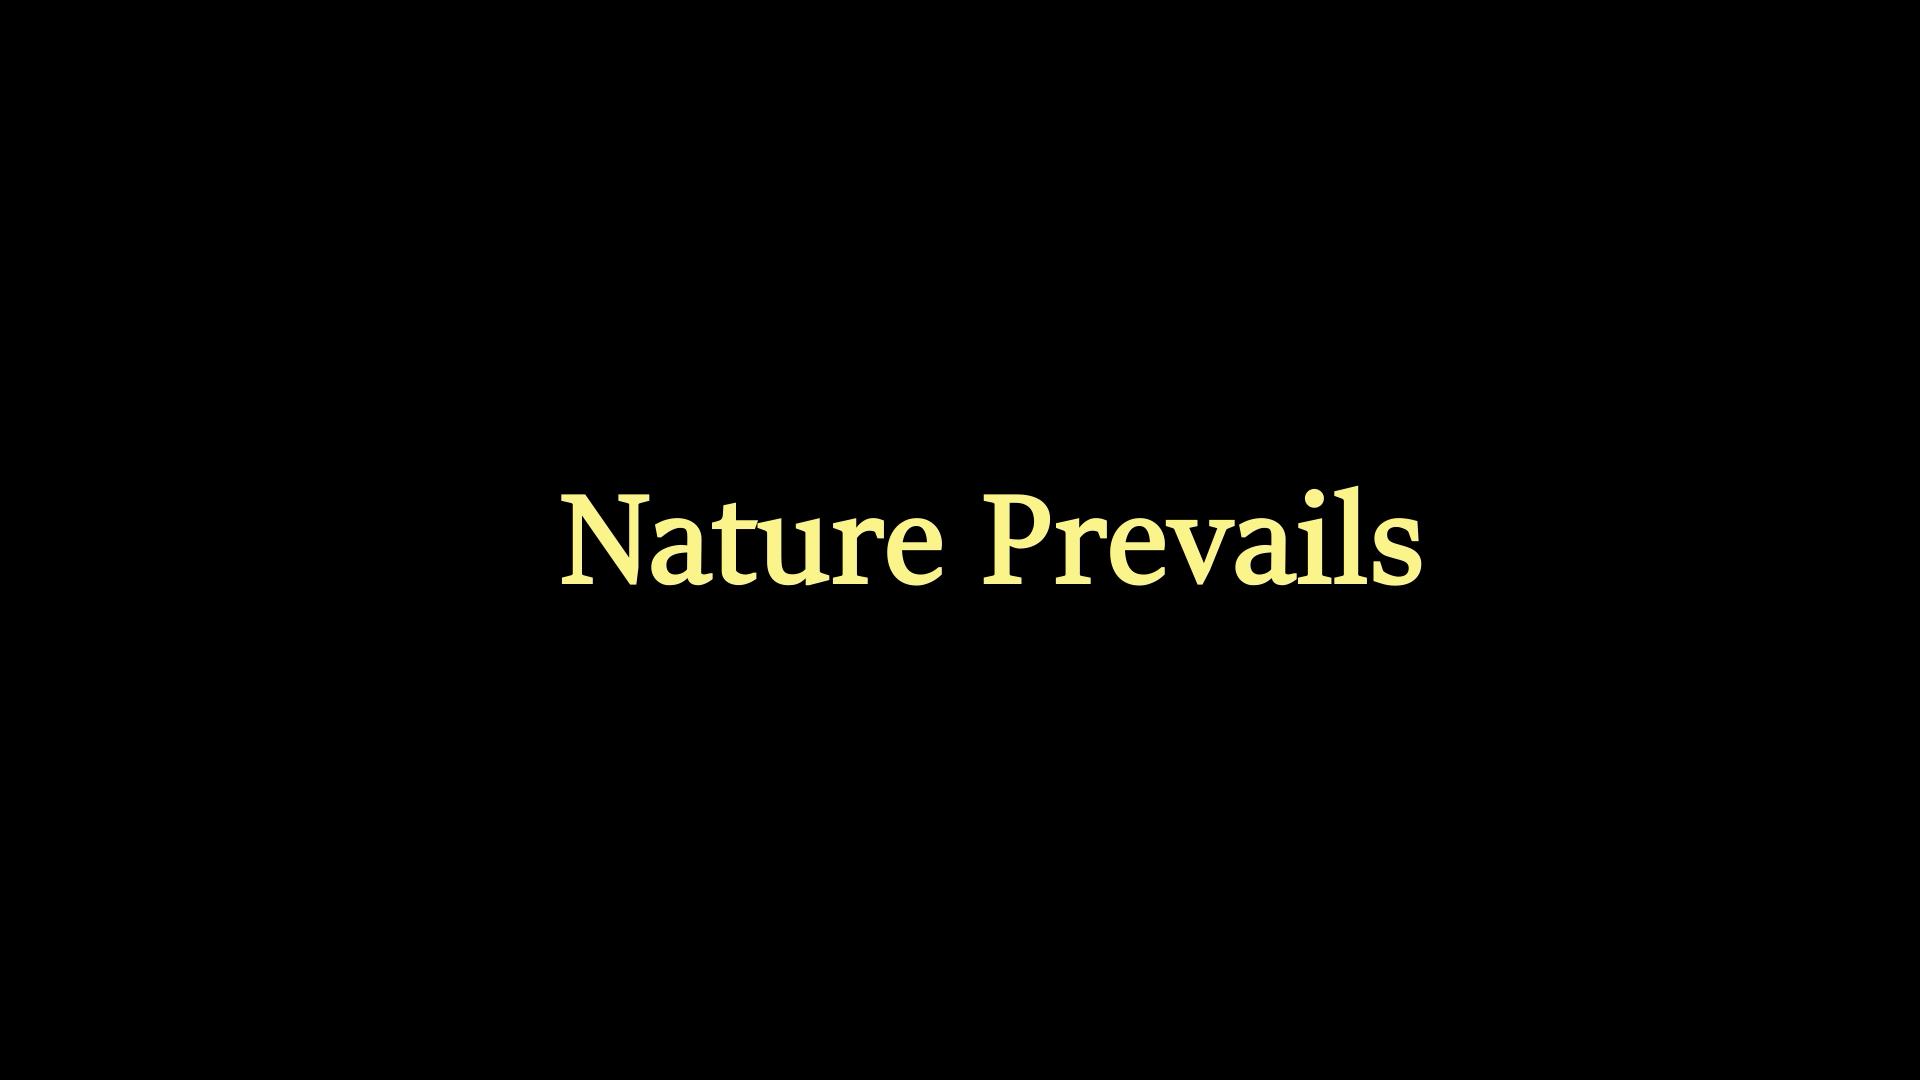 Black background with yellow text that reads 'Nature Prevails'.